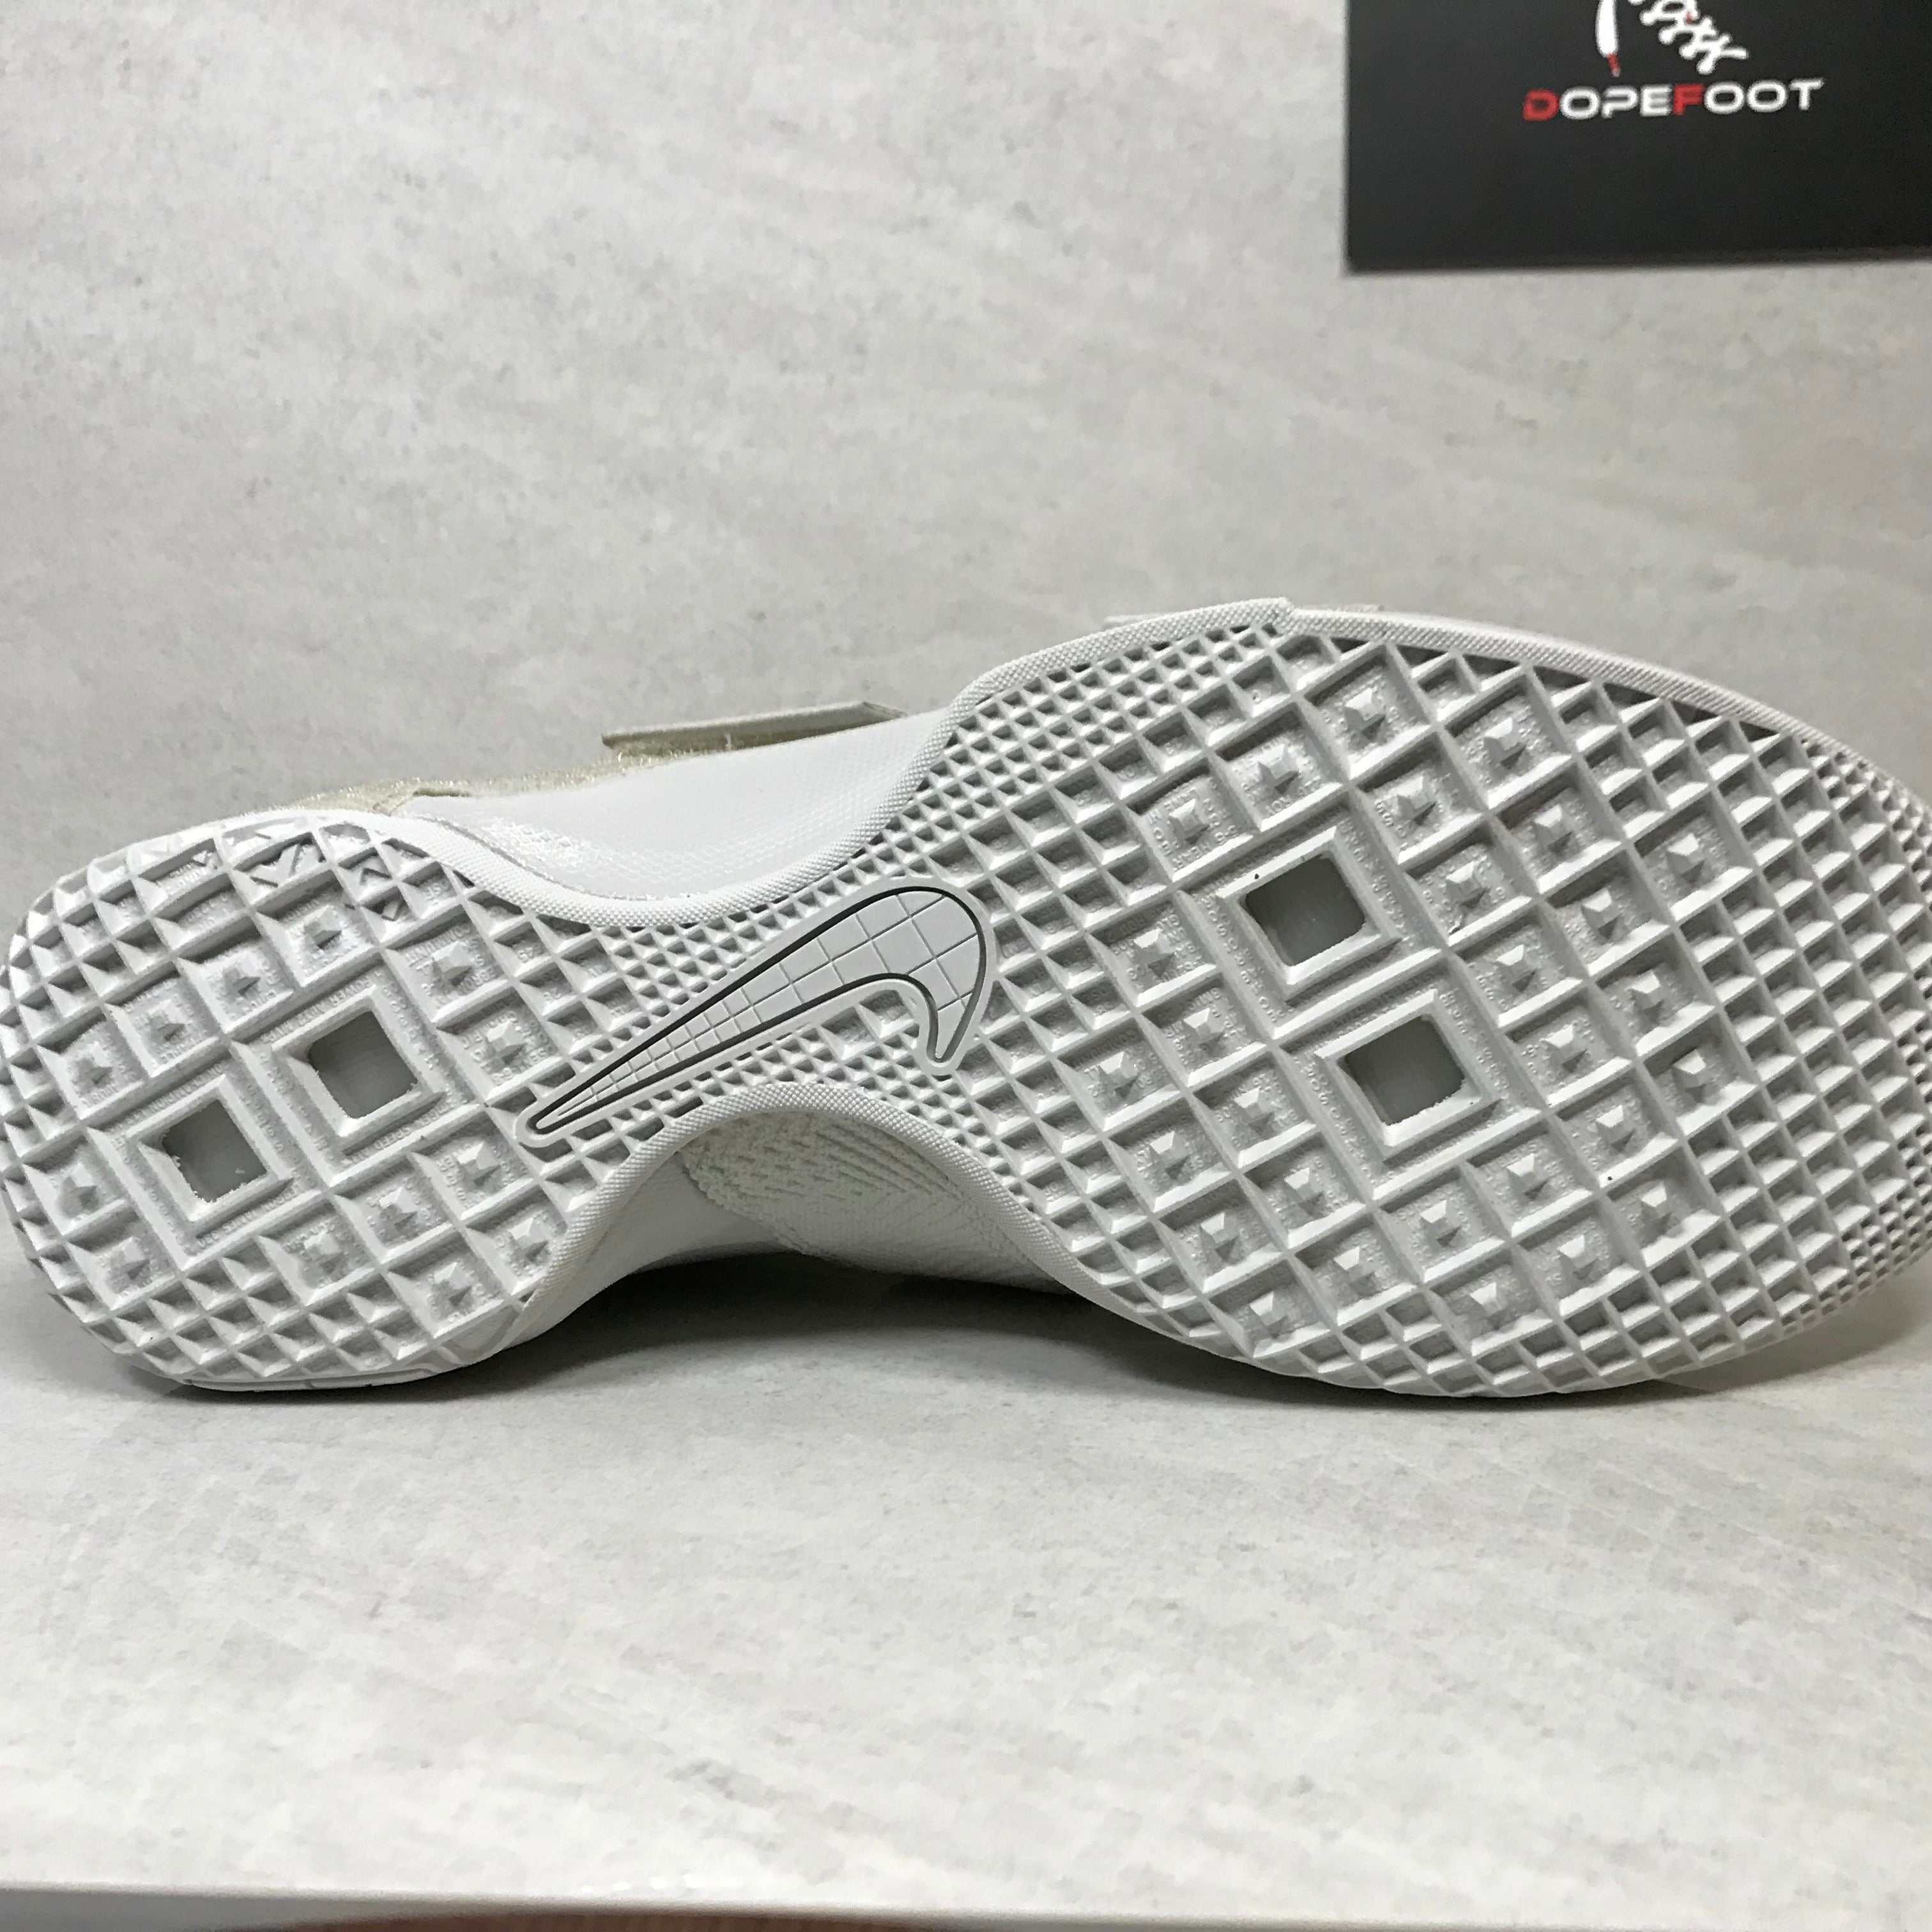 521dc5318dda ... men basketball shoes 749417 001 04bfb 1cc7b  low cost ds nike lebron  soldier 10 x sfg lux 911306 001 light bone size 9